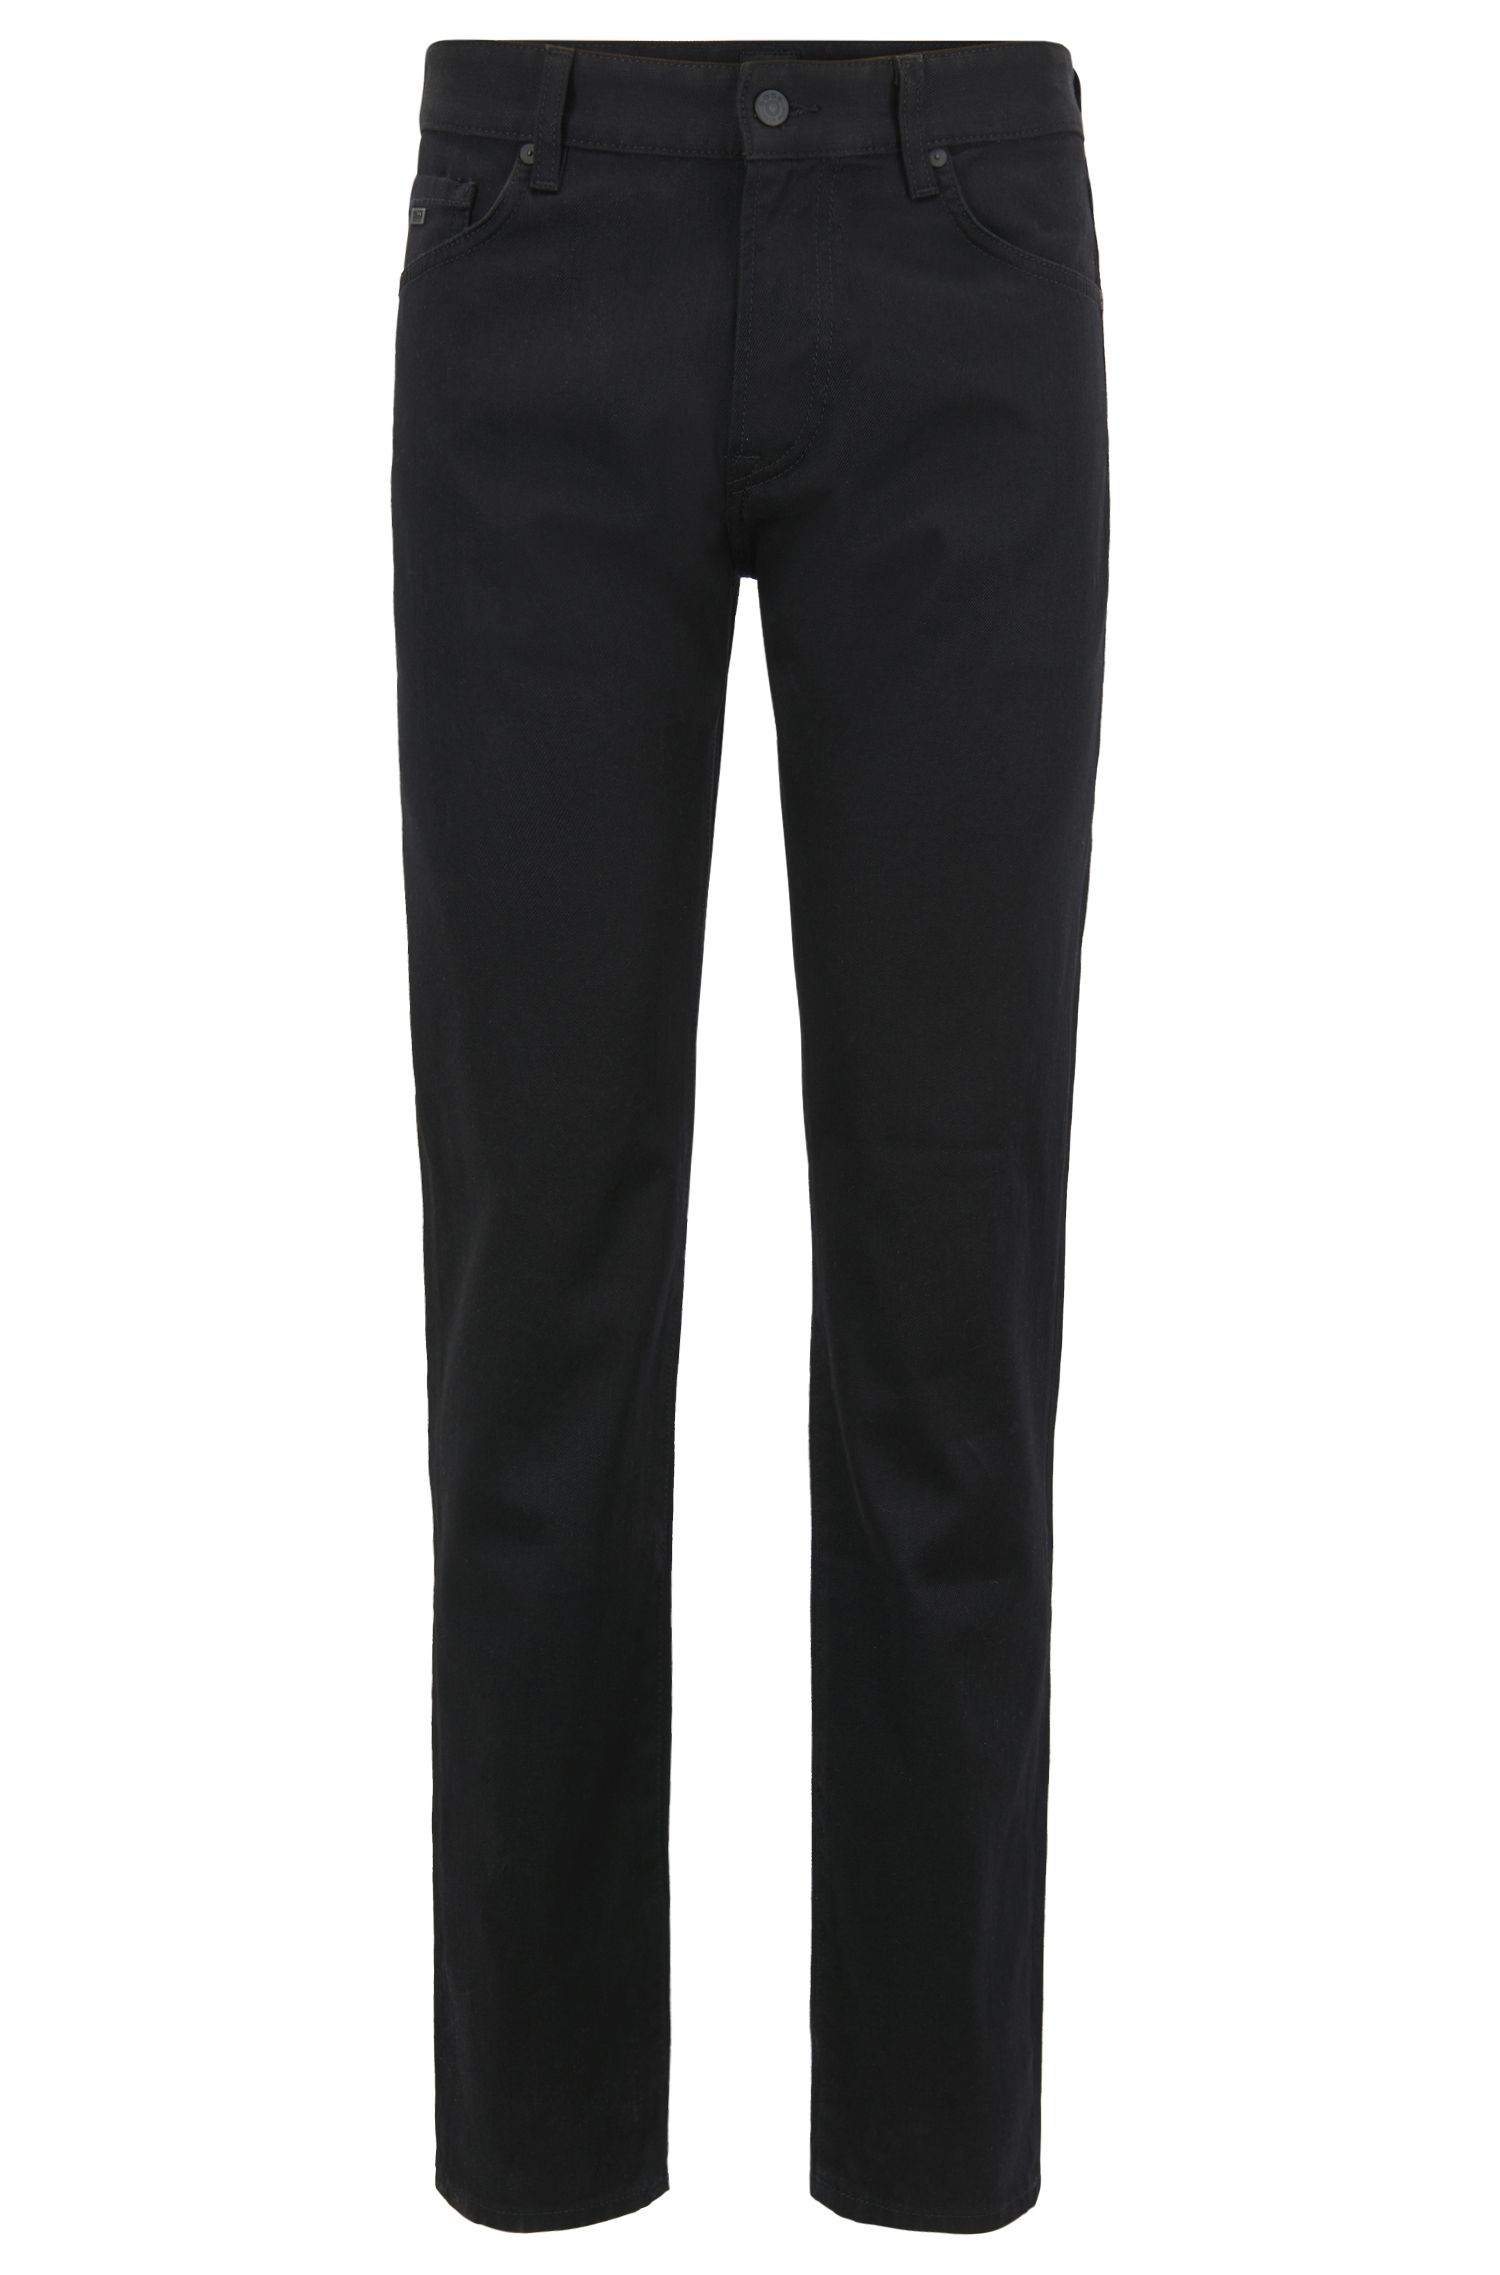 Jean Regular Fit en confortable denim stretch noir